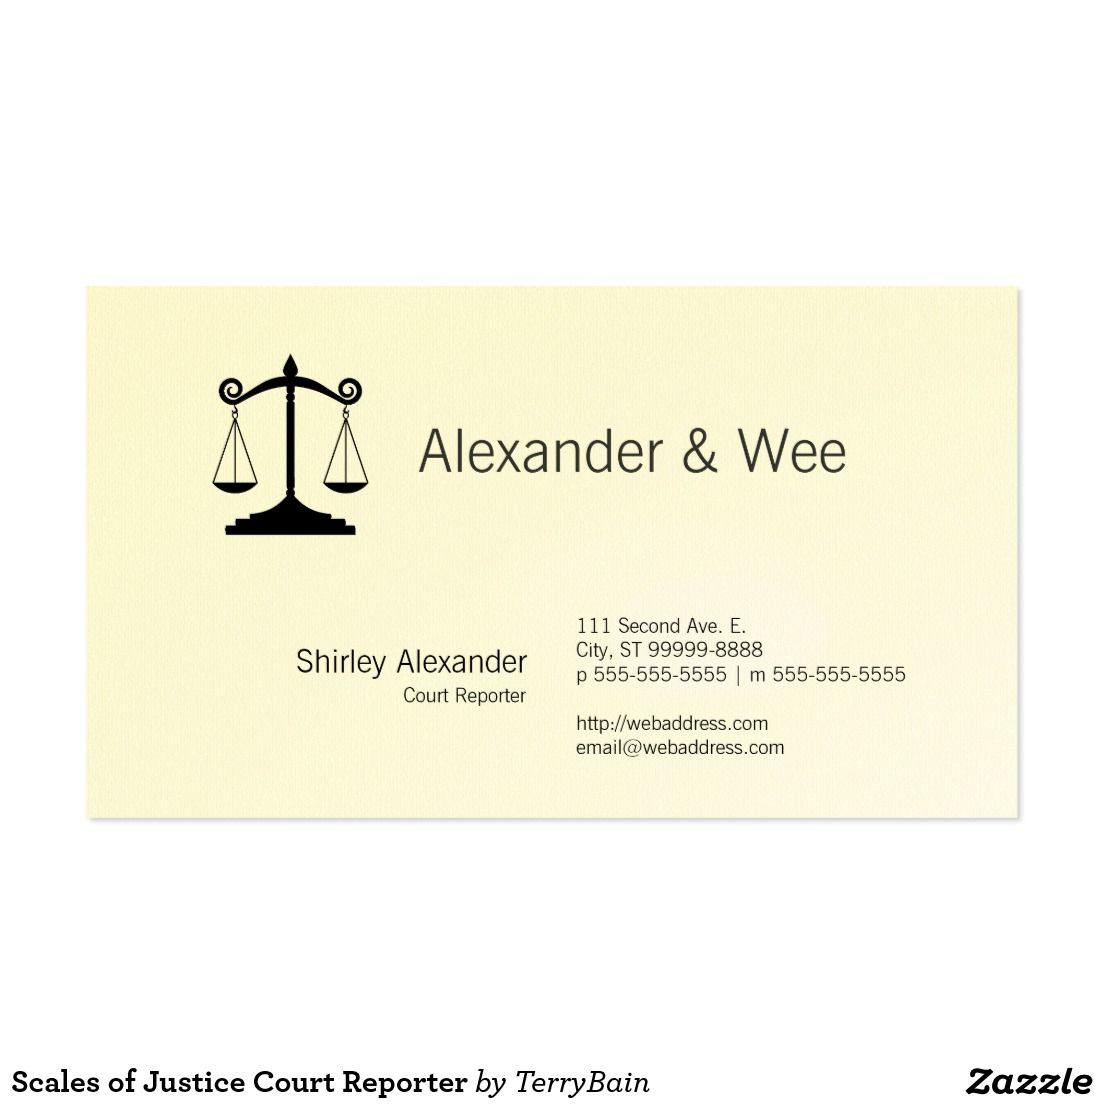 Scales of Justice Court Reporter Business Card | All Things Zazzle ...